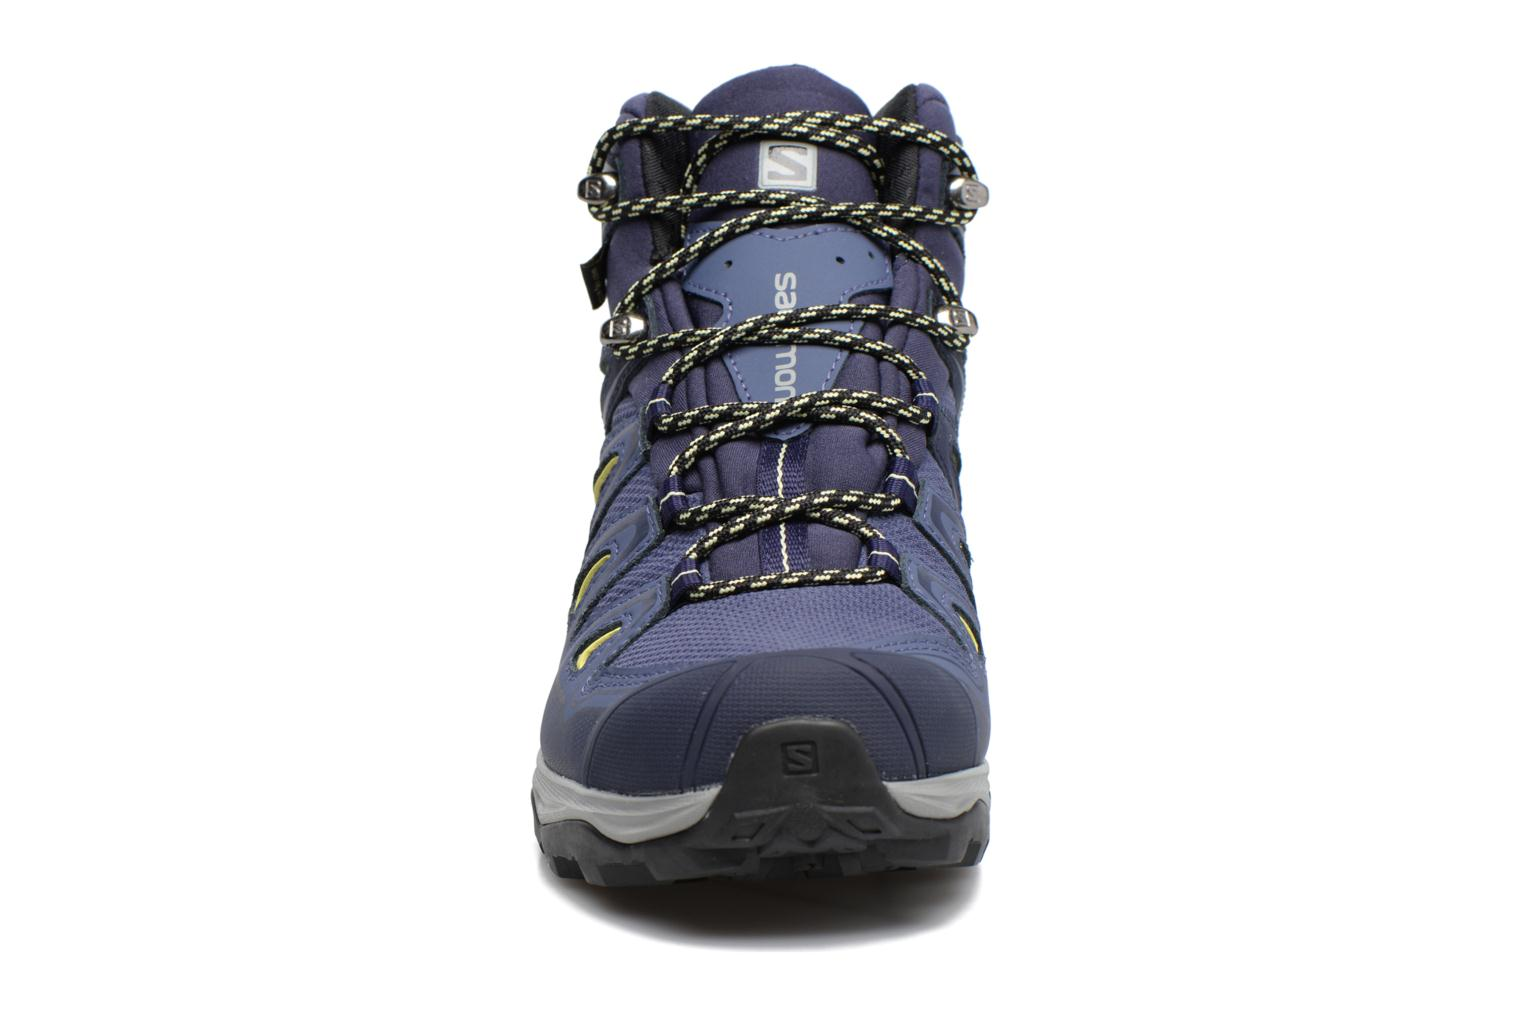 X Ultra 3 Mid Gtx W Crown Blue/Evening B/Snny Lime